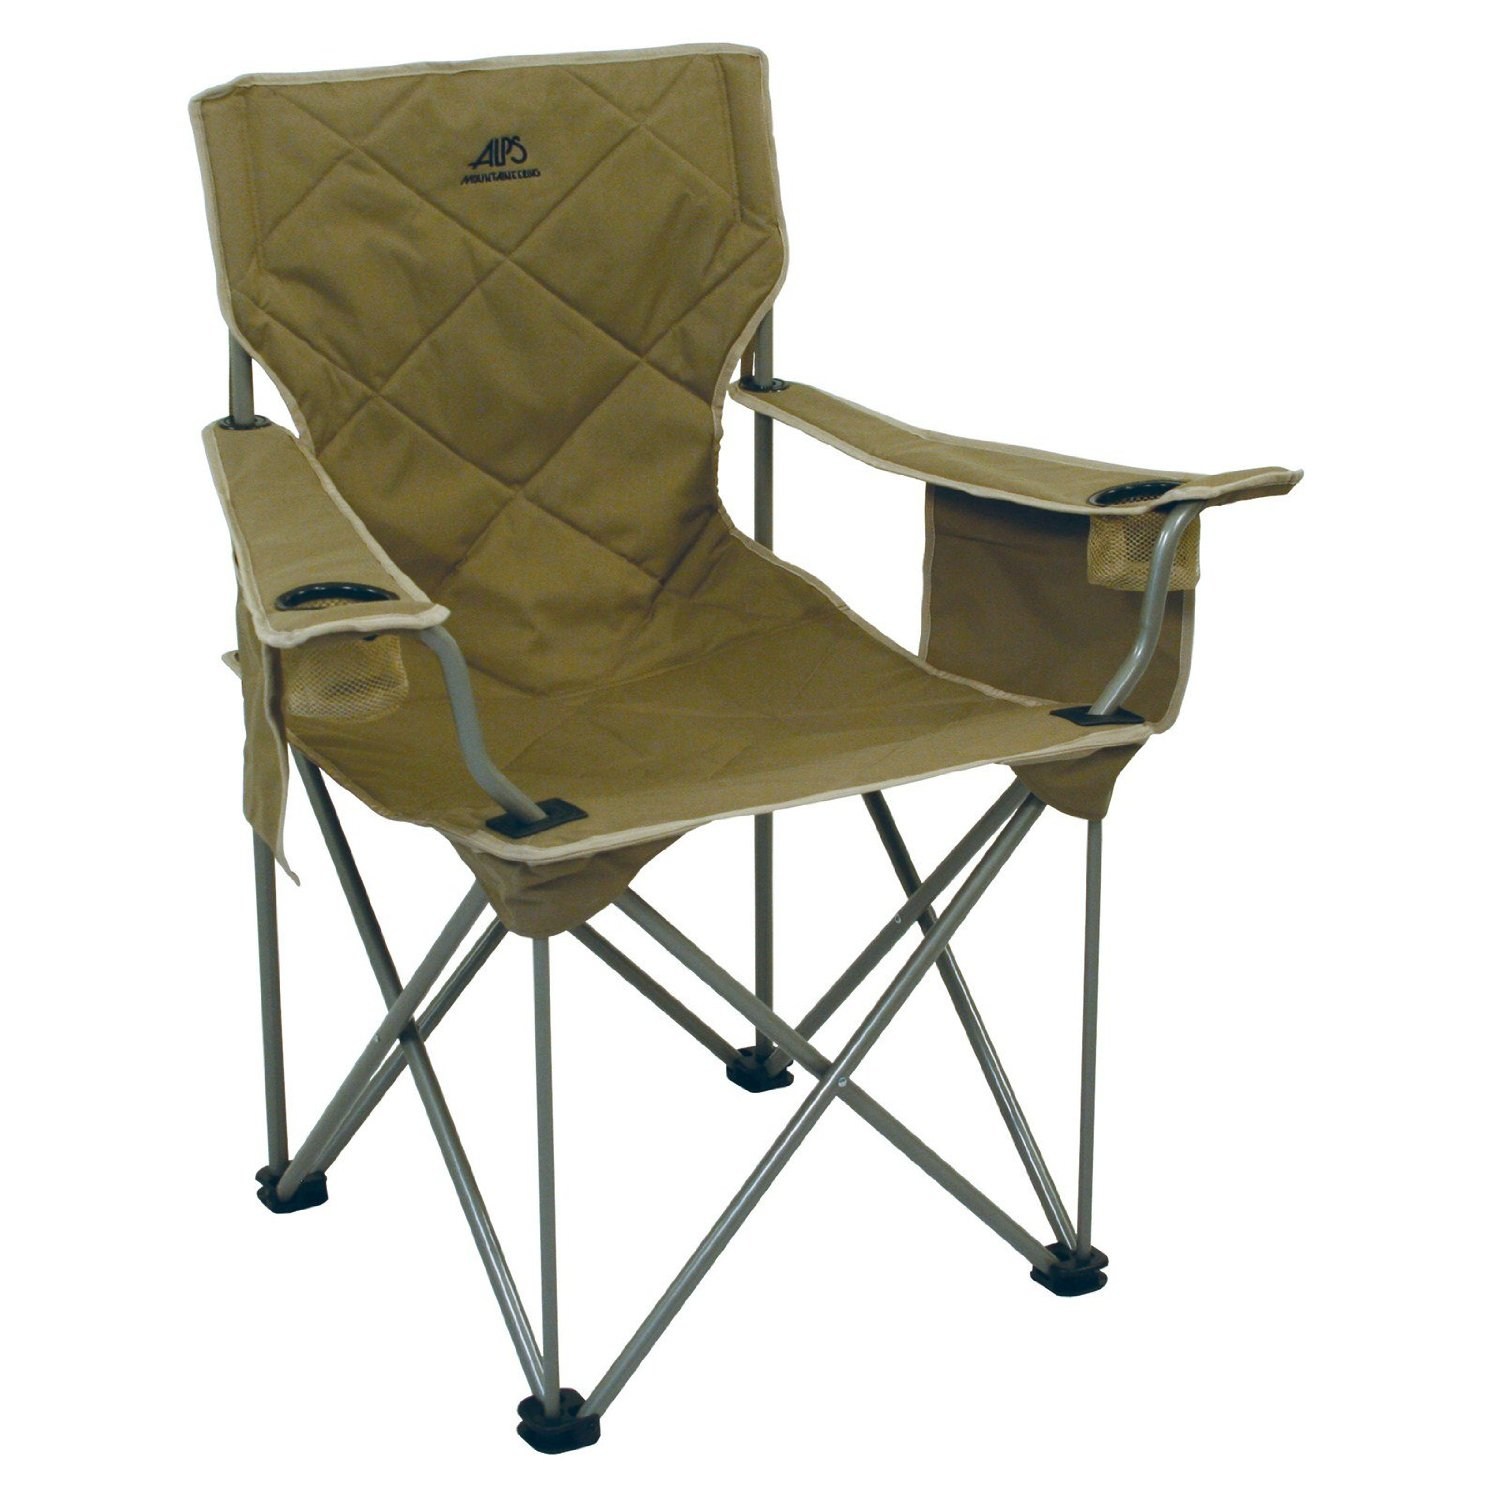 Alps Mountaineering King Kong Folding Camping Chairs Easier Camping